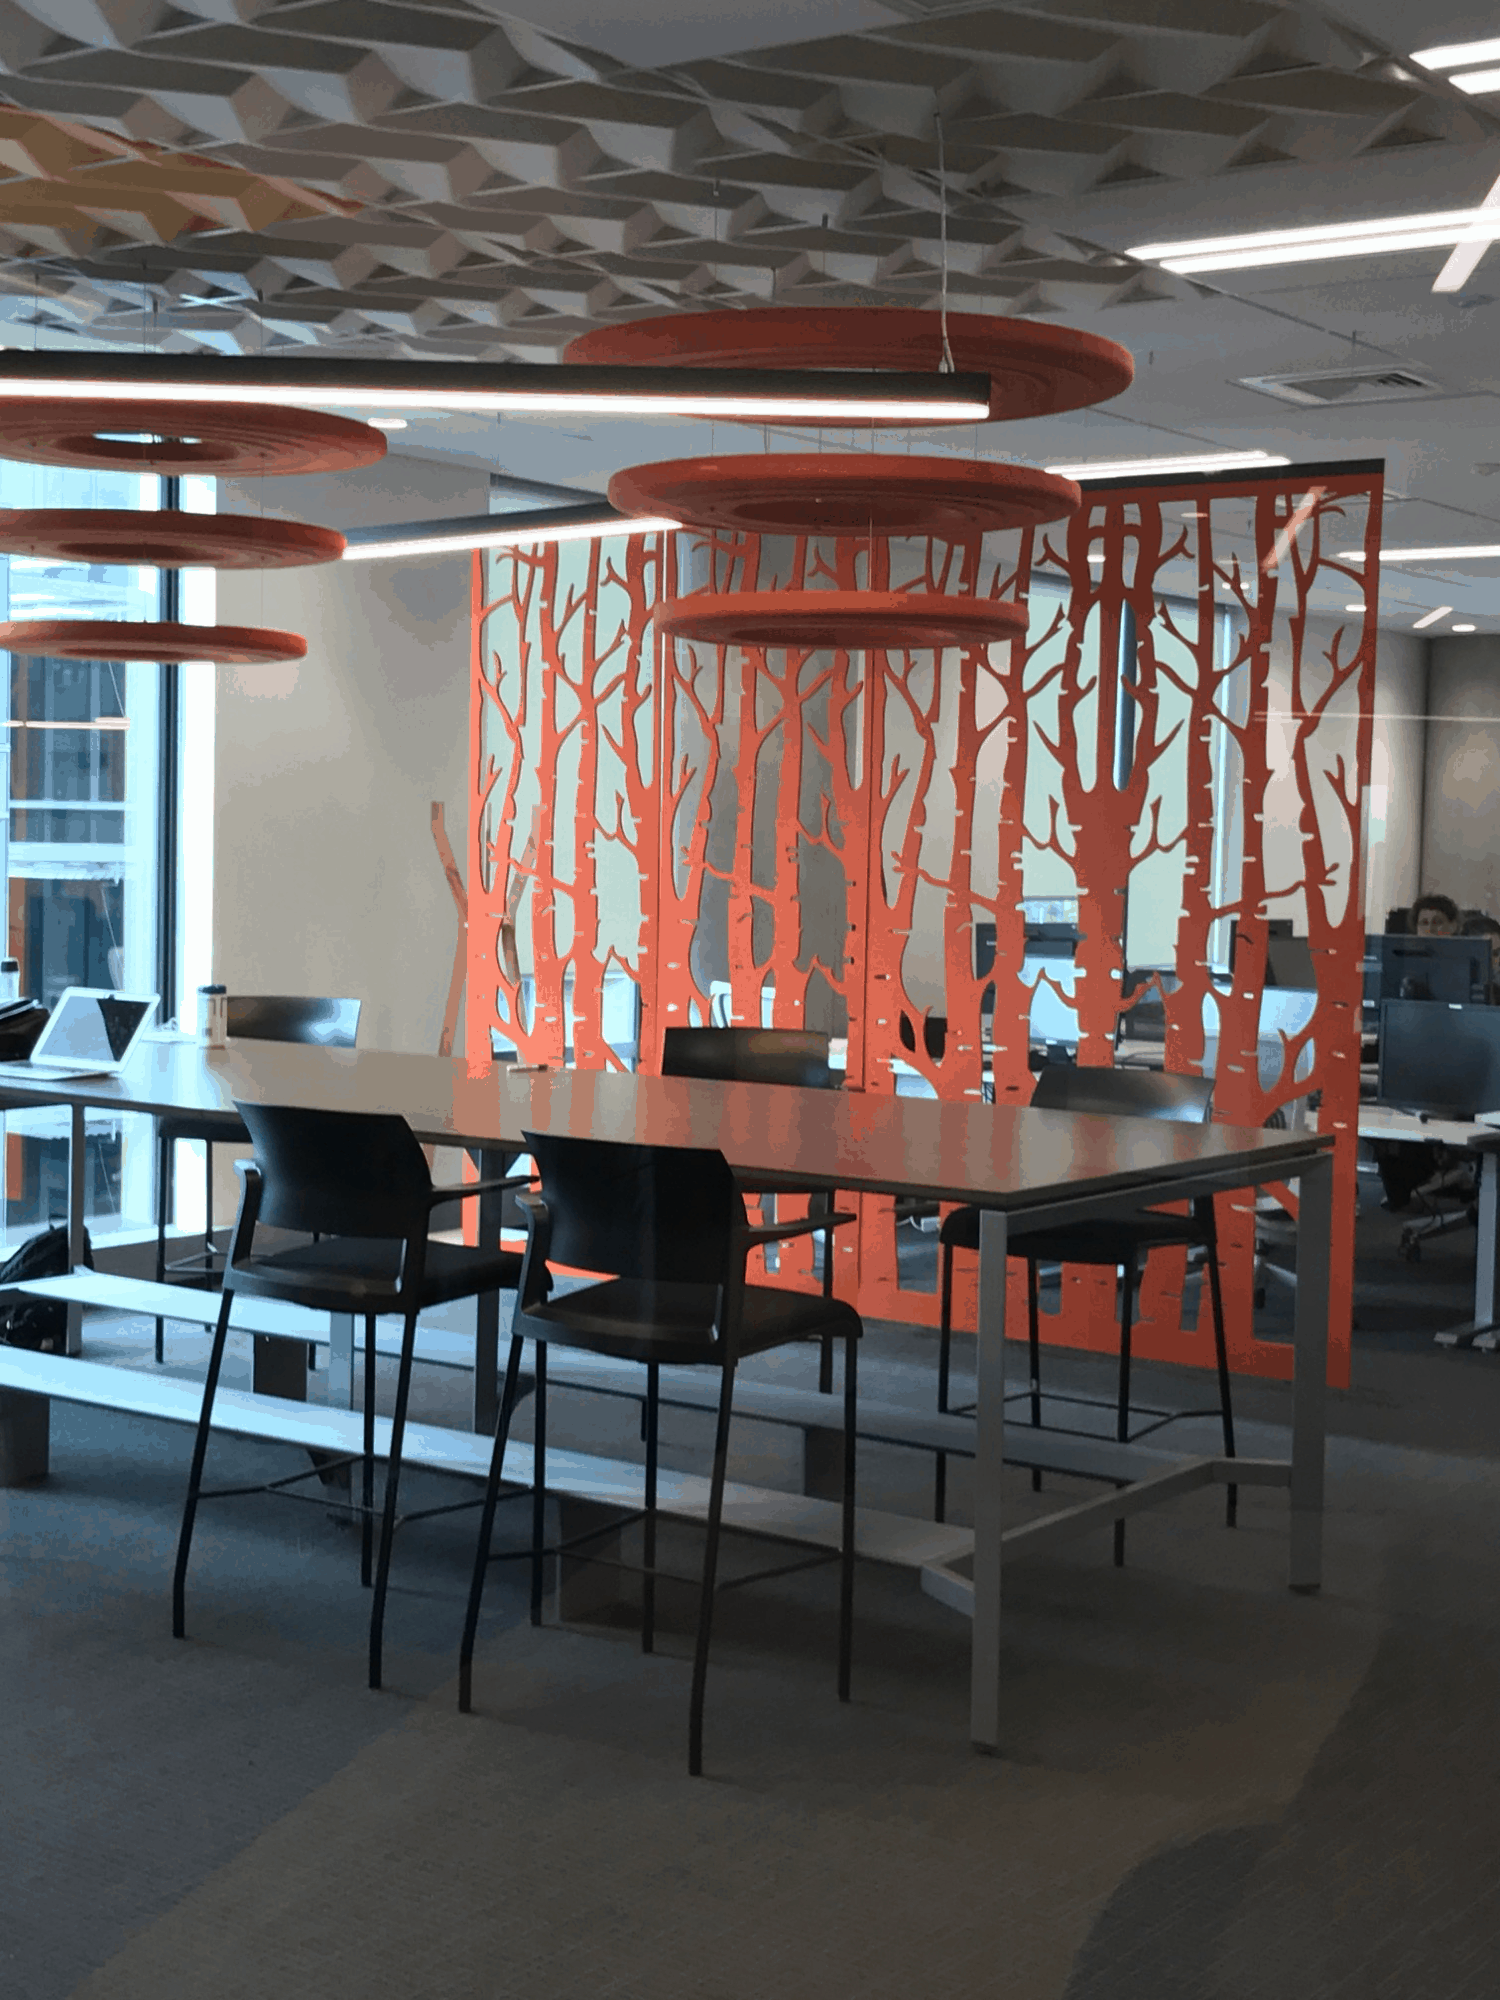 IBM office in Auckland workplace open meeting space with art used as room divider